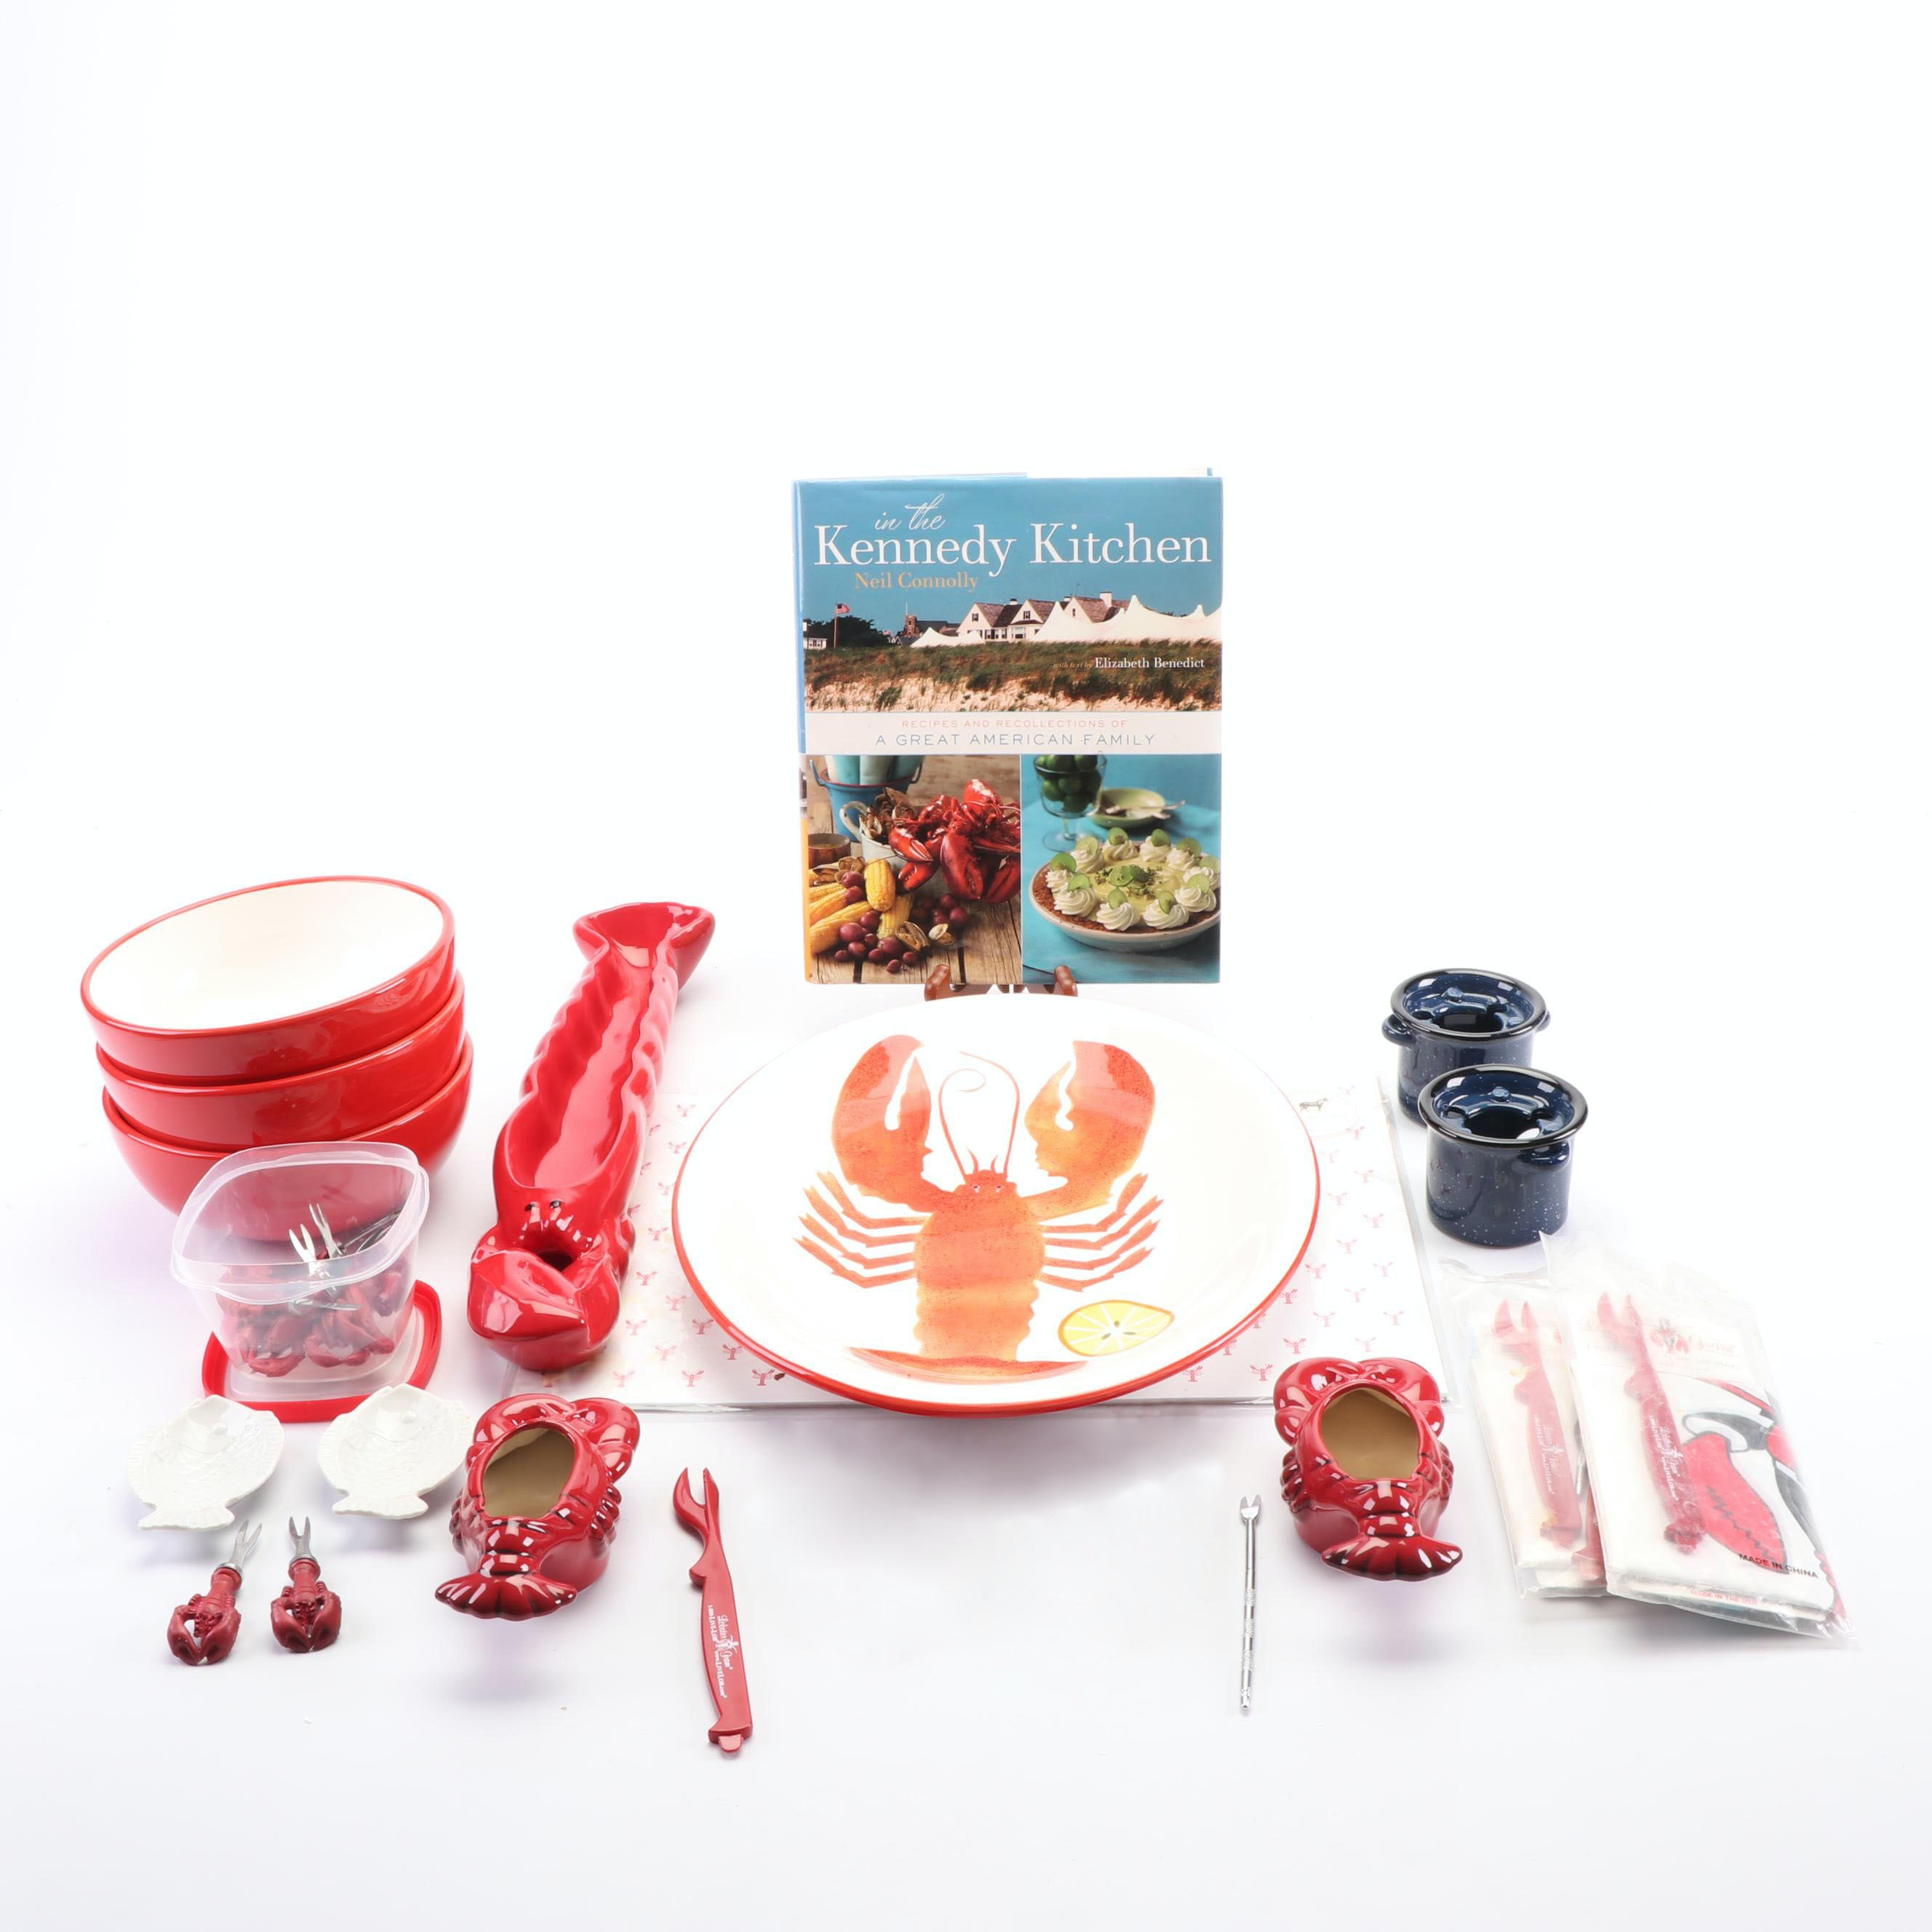 """Lobster Themed Dinnerware with """"Kennedy Kitchen"""" Book by Neil Connolly"""